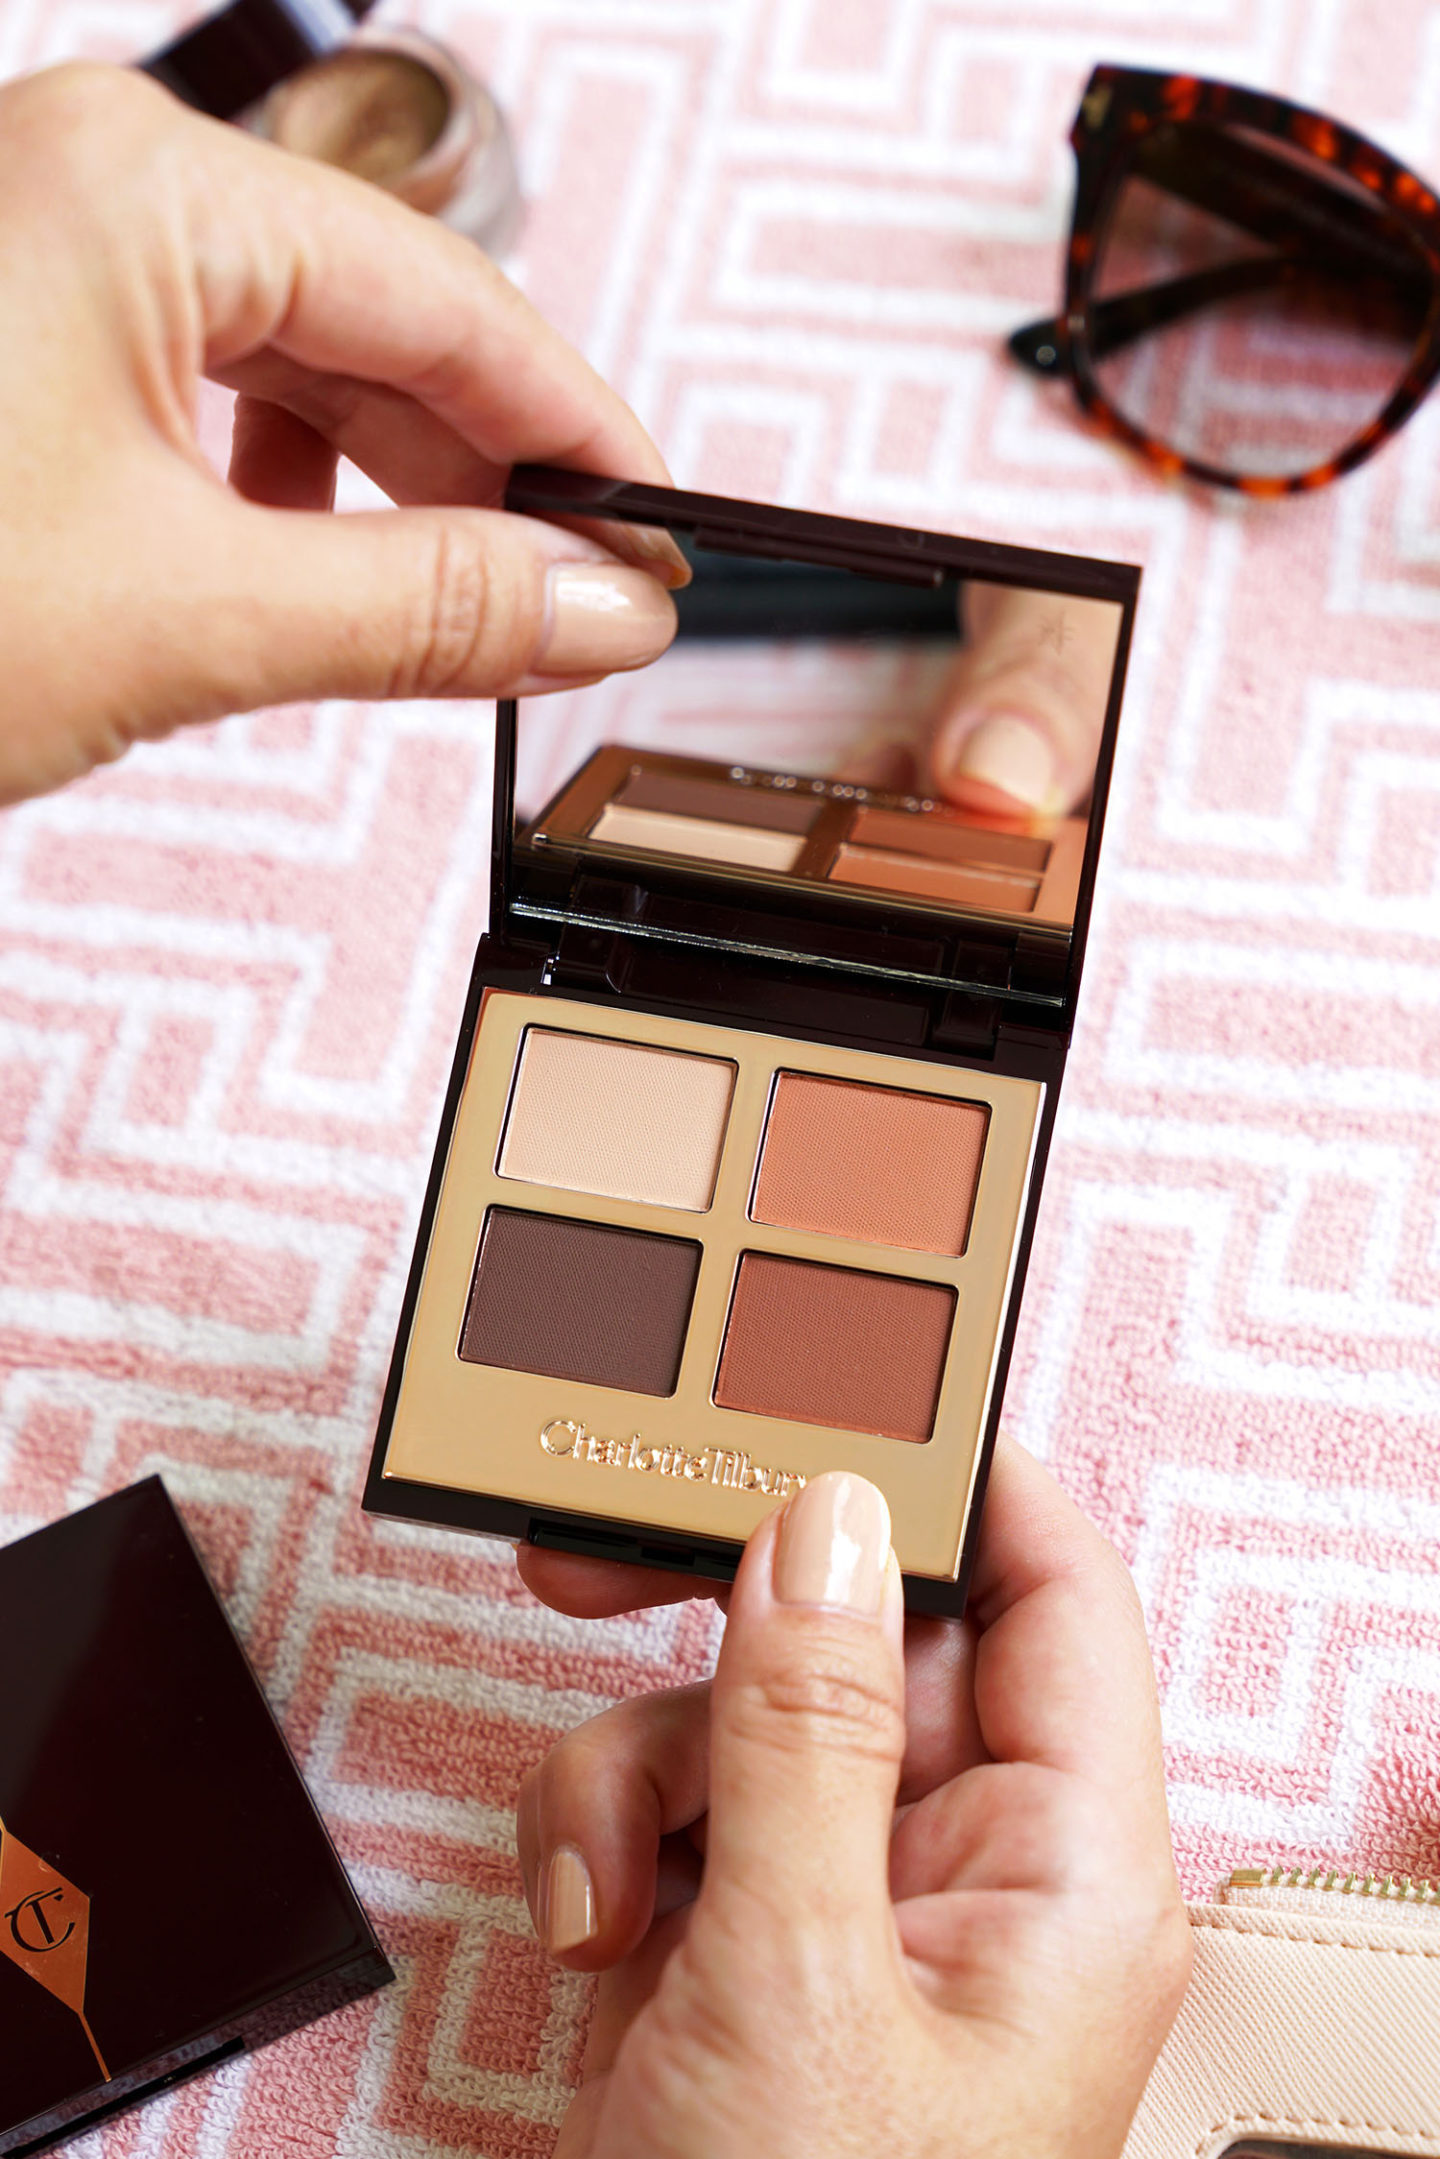 Charlotte Tilbury Eyeshadow Quad in Desert Haze